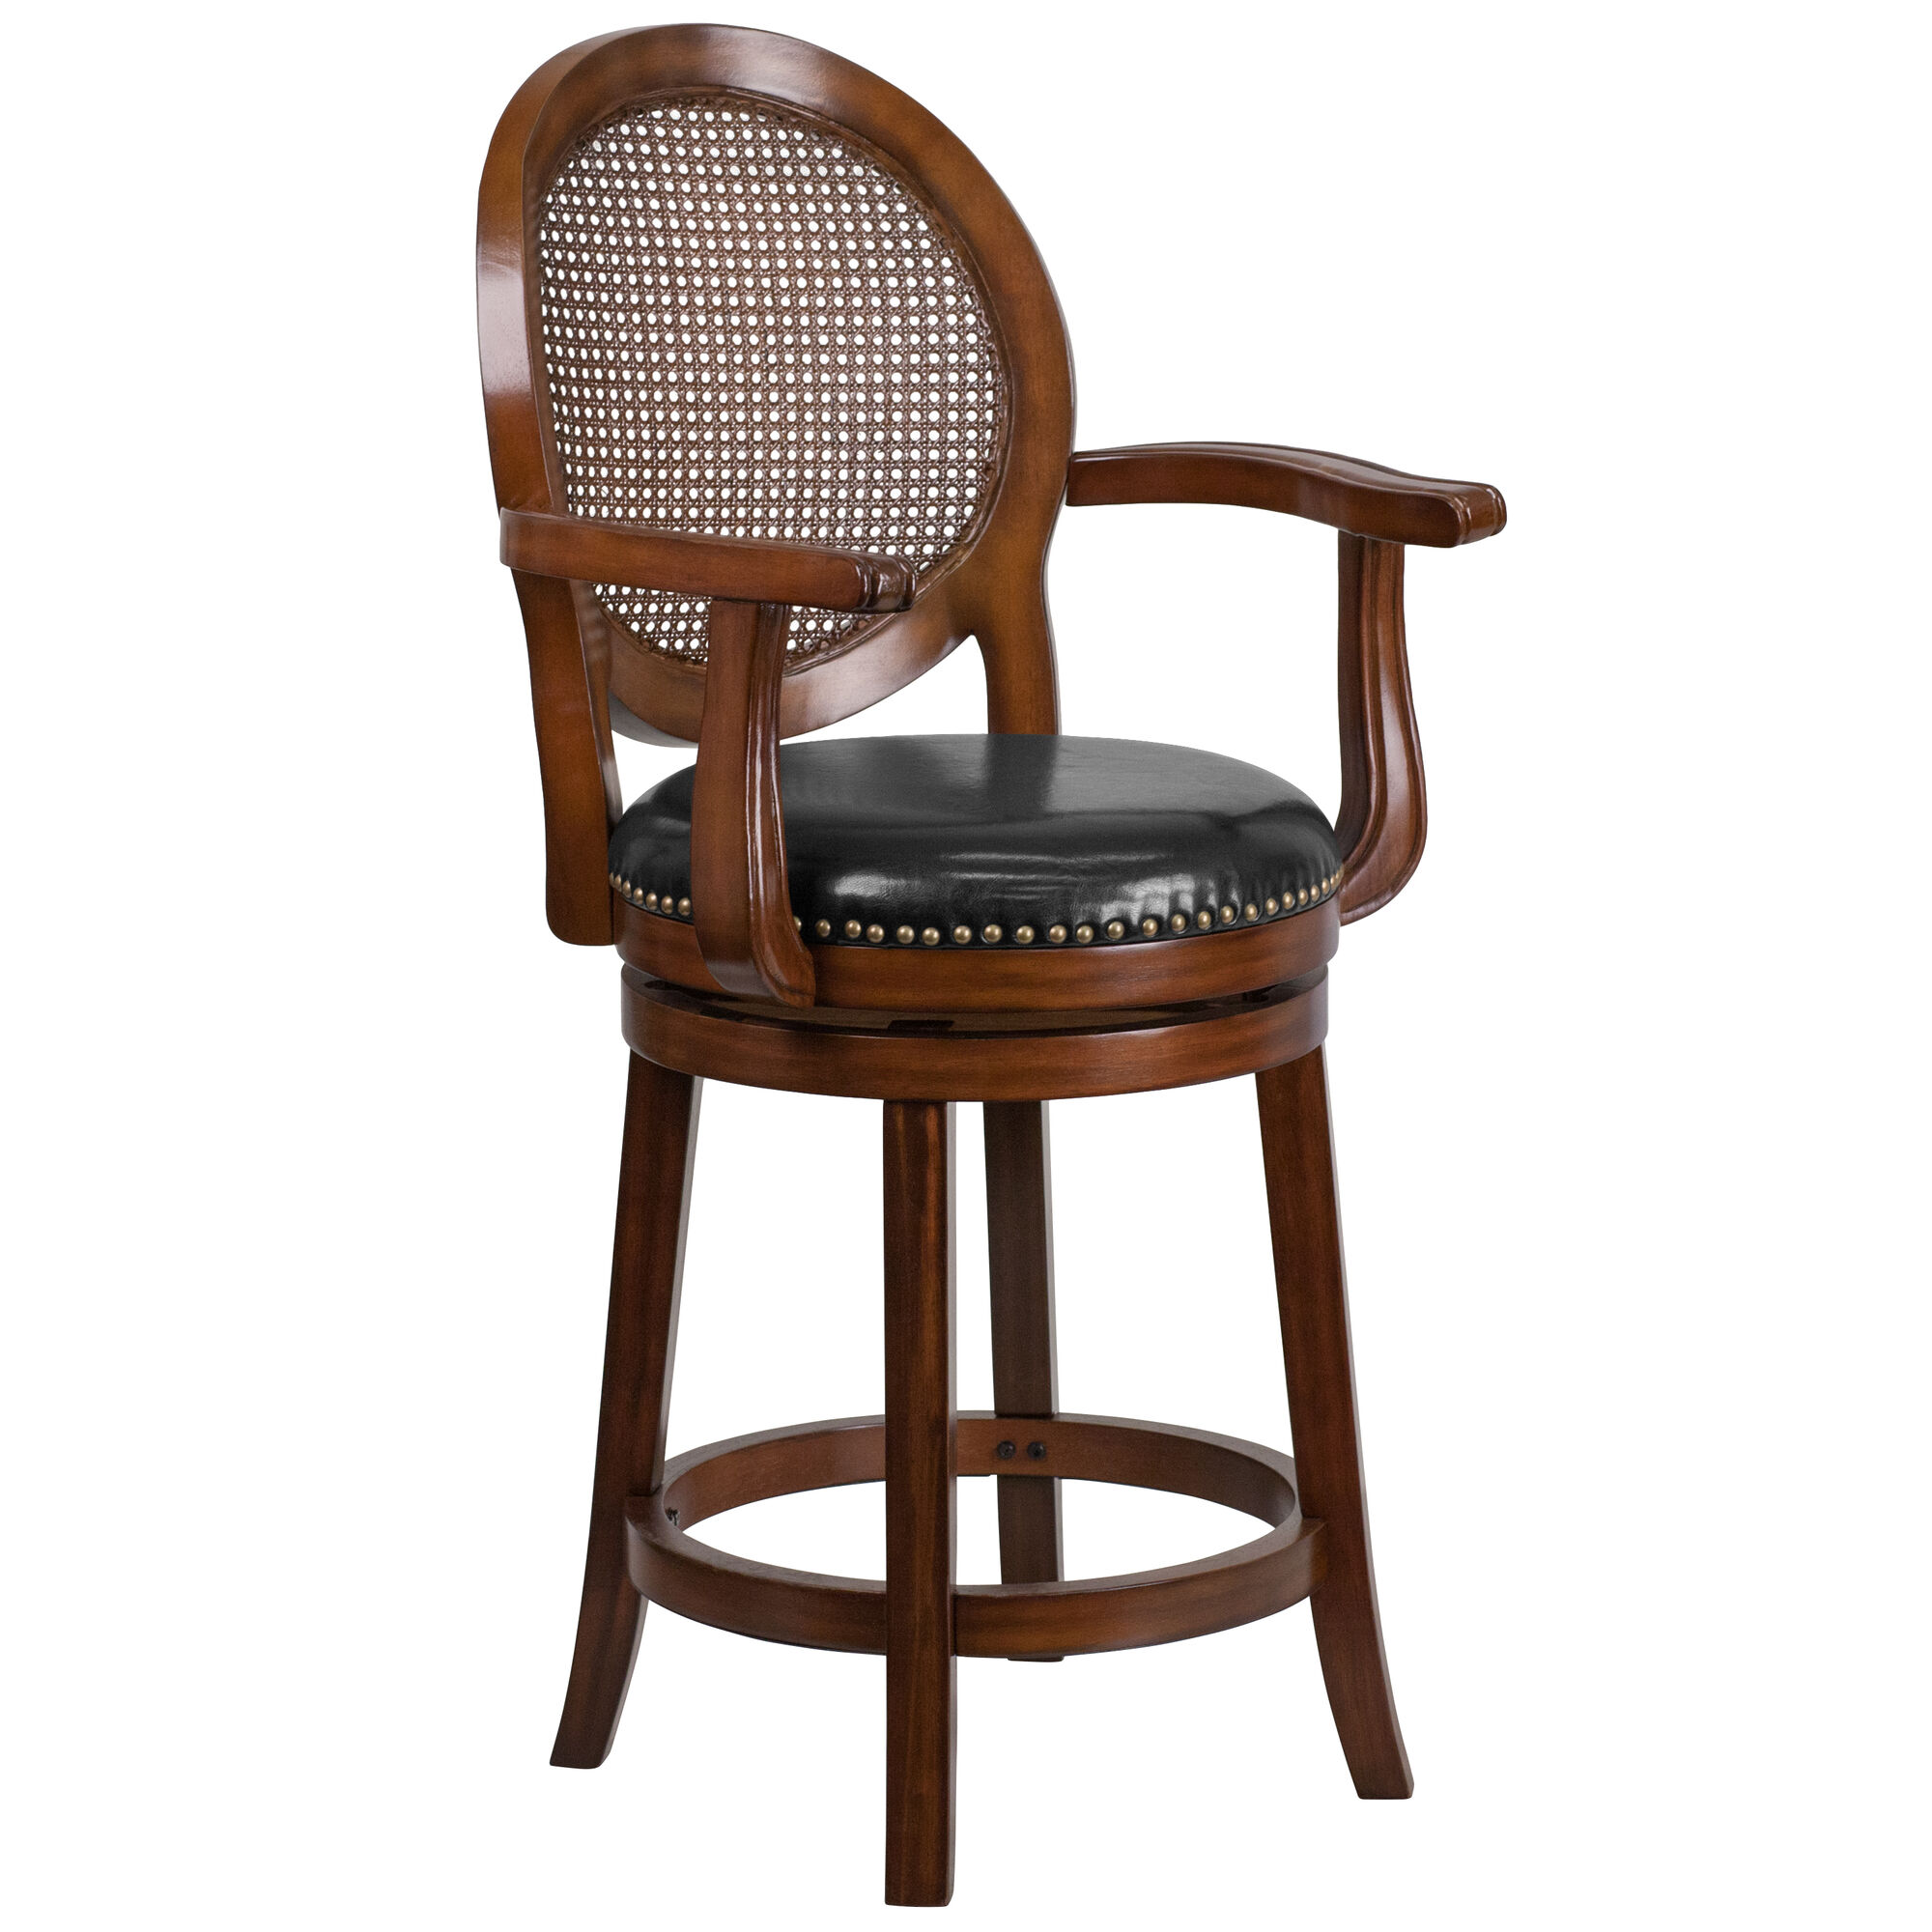 Wondrous 26 High Expresso Wood Counter Height Stool With Arms Woven Rattan Back And Black Leather Swivel Seat Evergreenethics Interior Chair Design Evergreenethicsorg